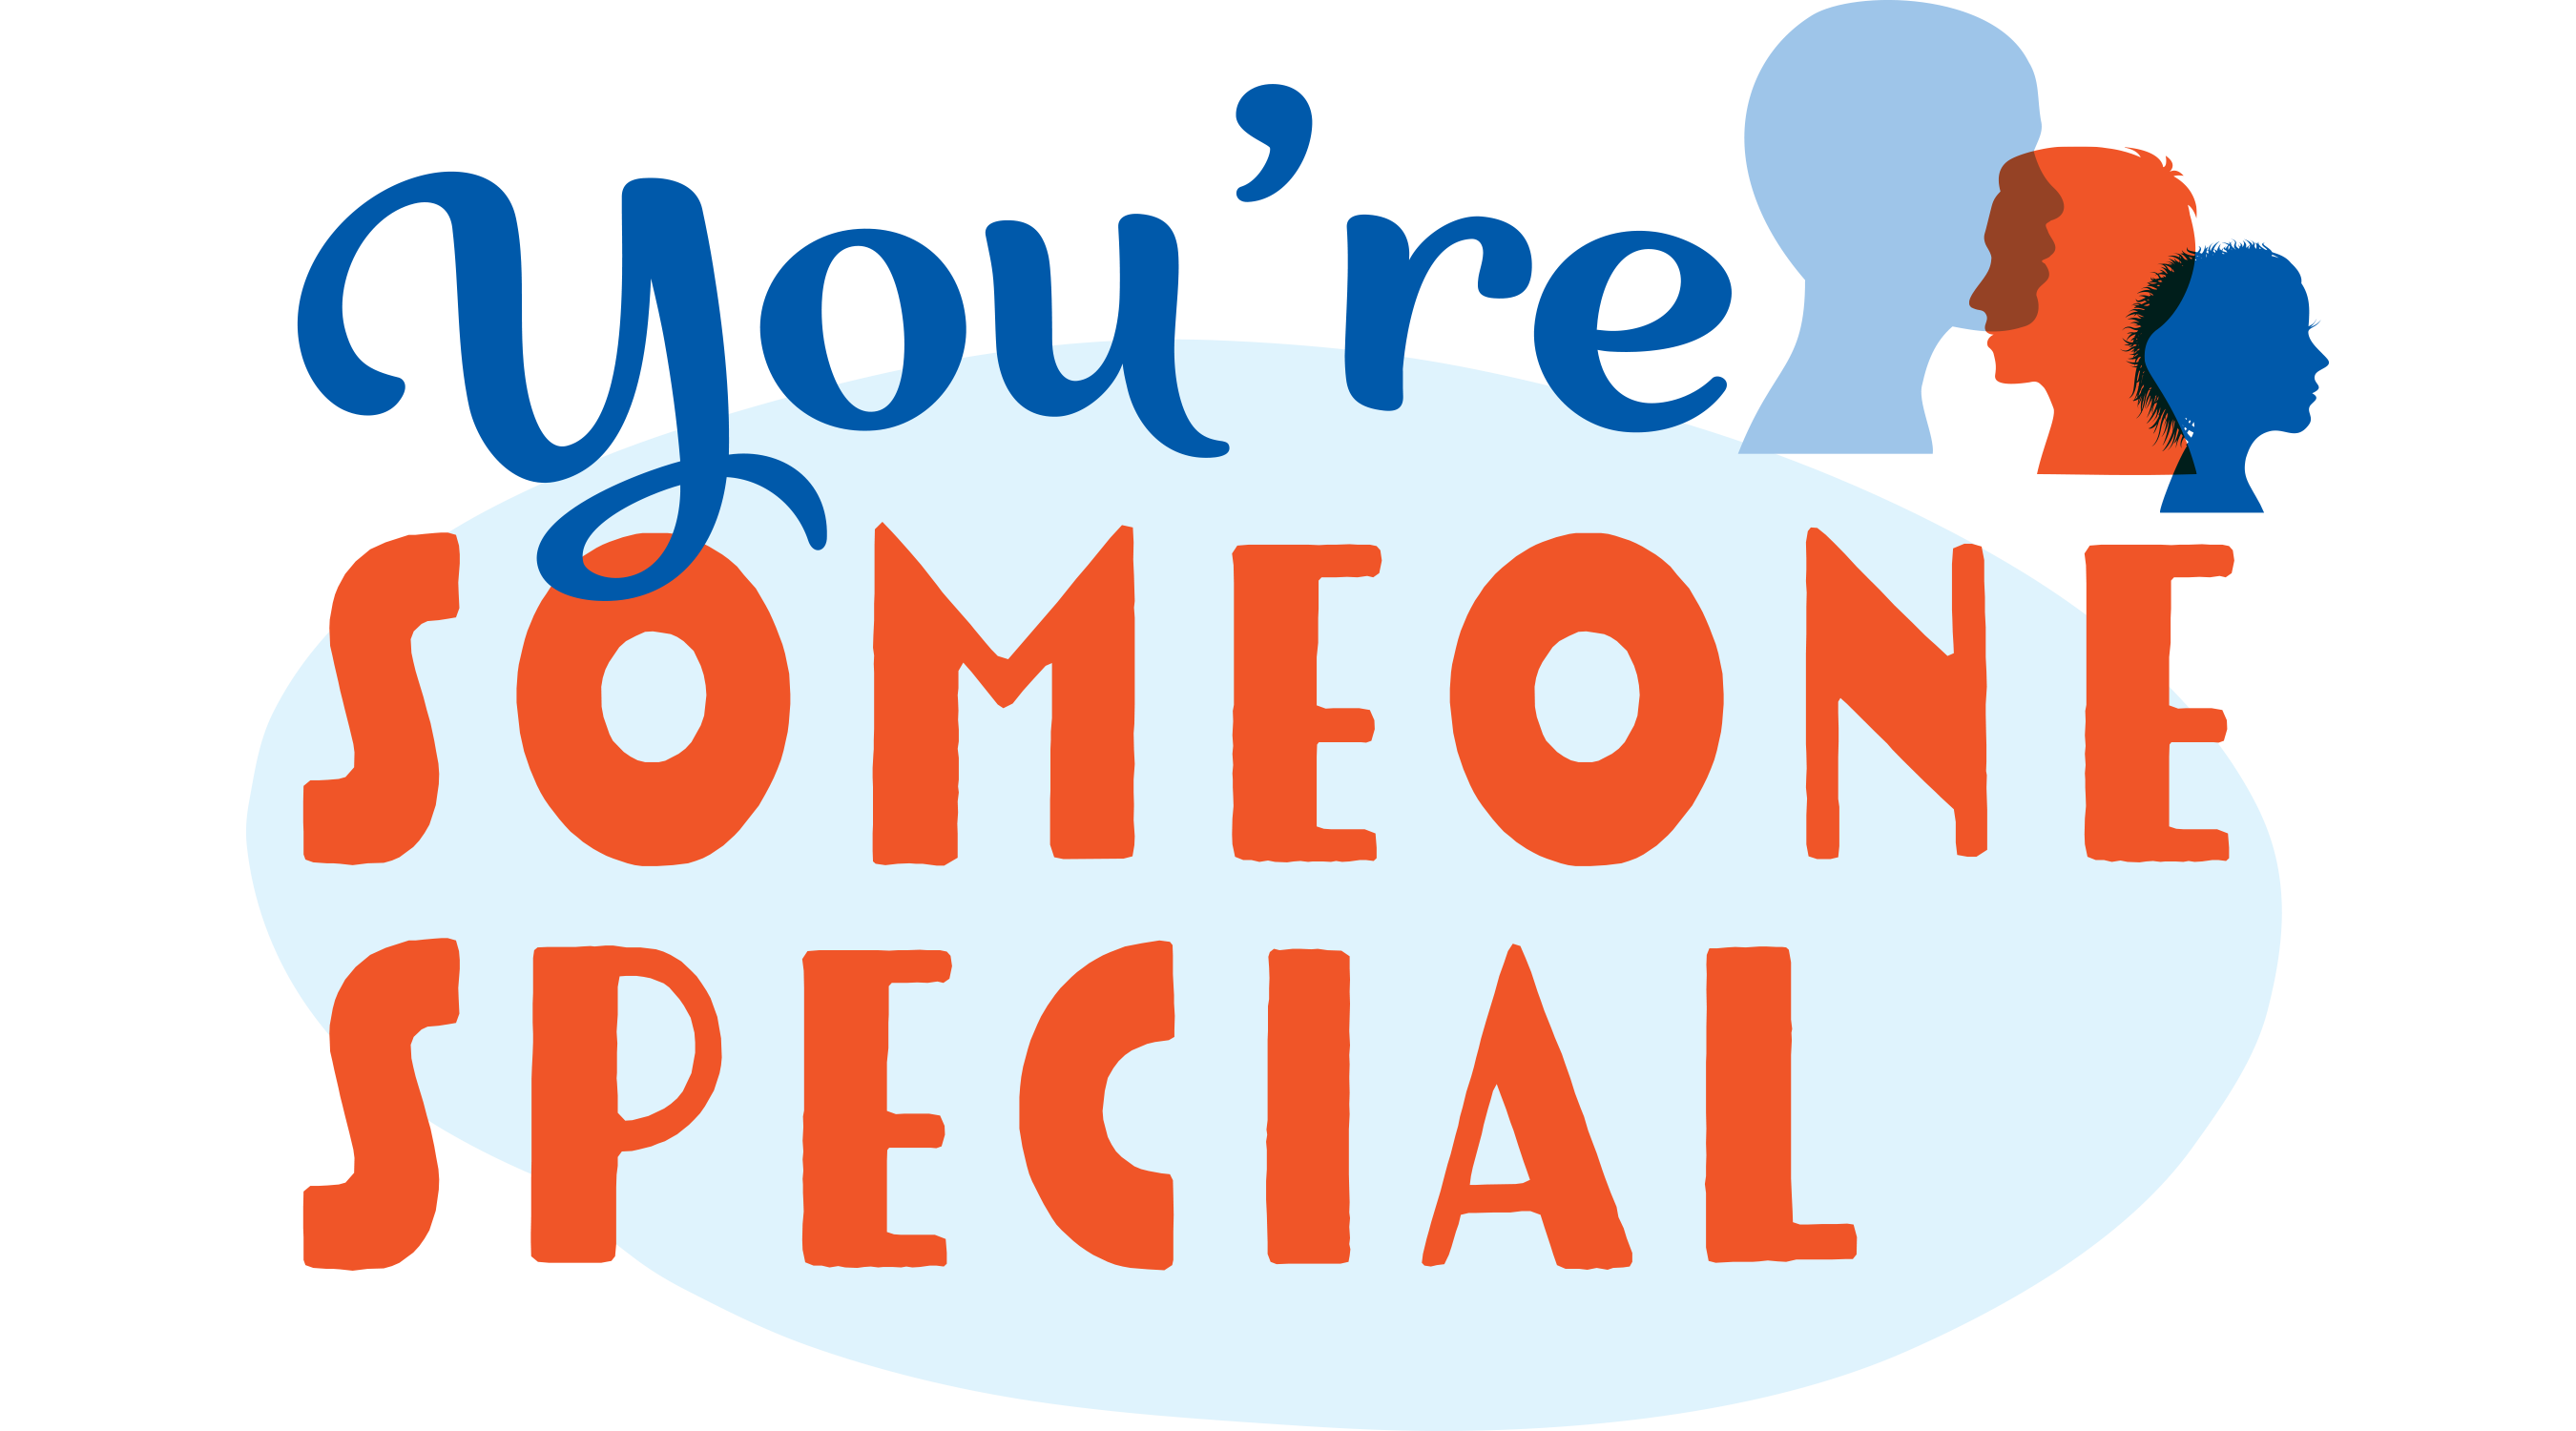 You�re Someone Special